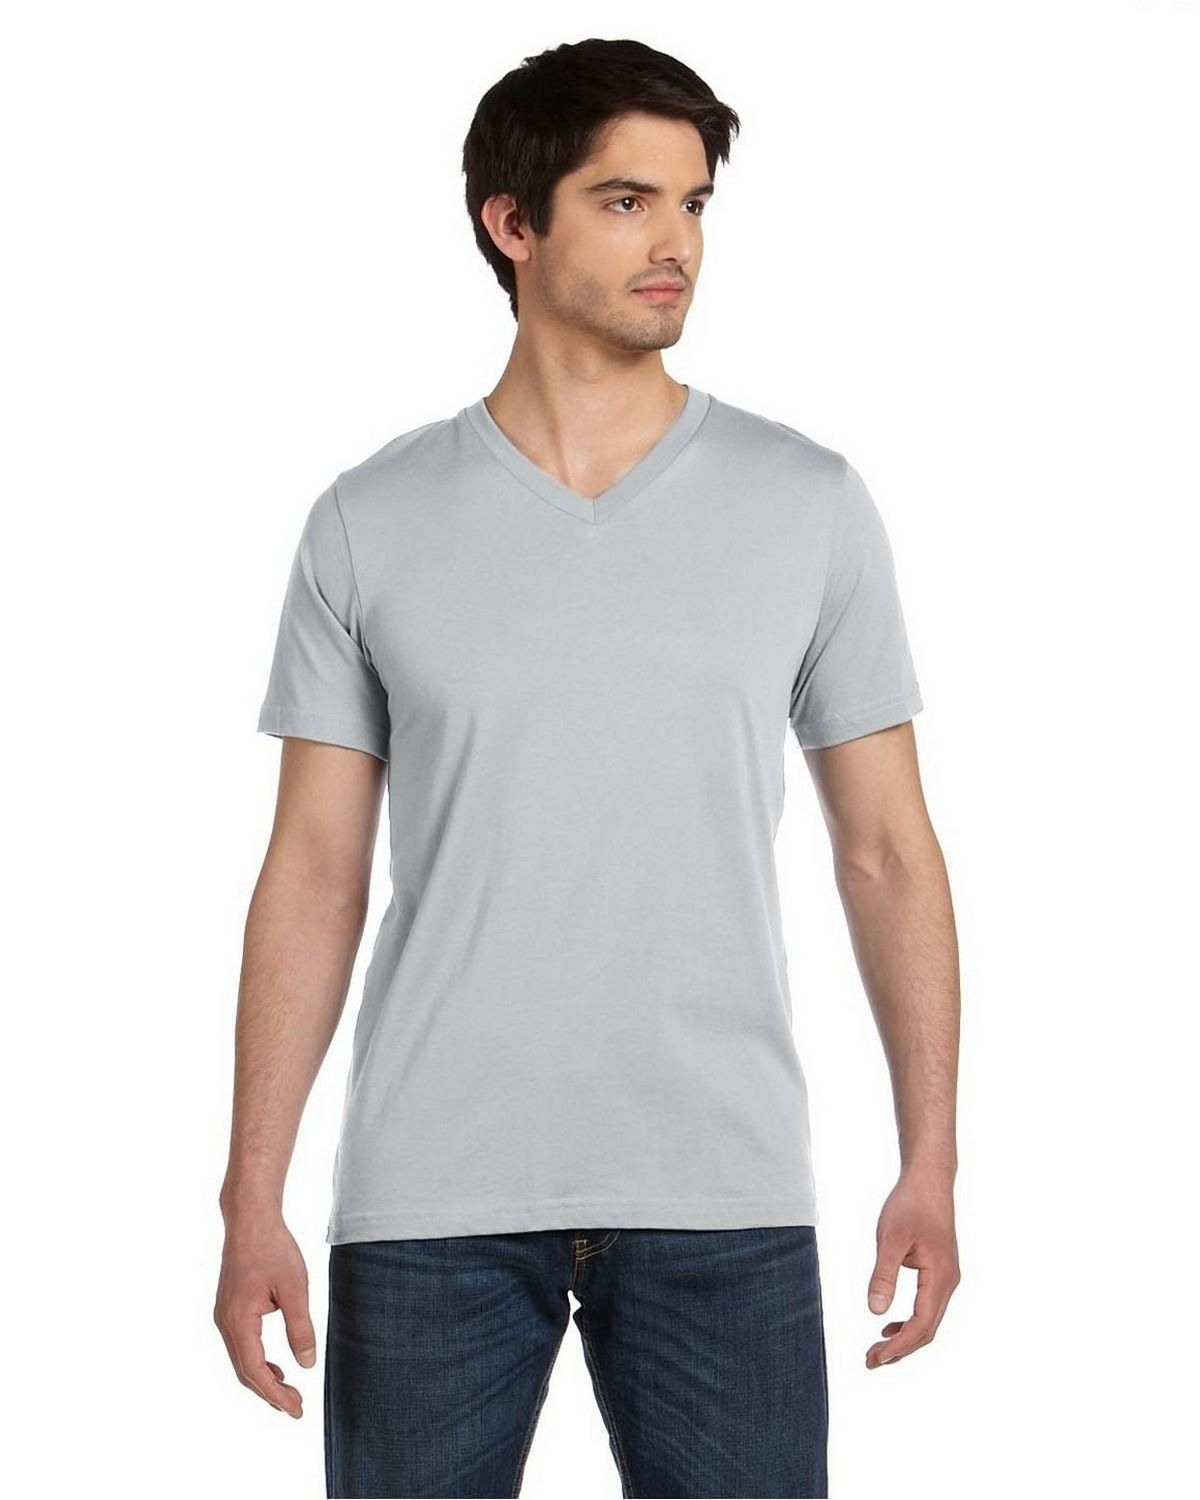 Bella + Canvas 3005 Unisex Jersey V-Neck T-Shirt - Silver - XL 3005